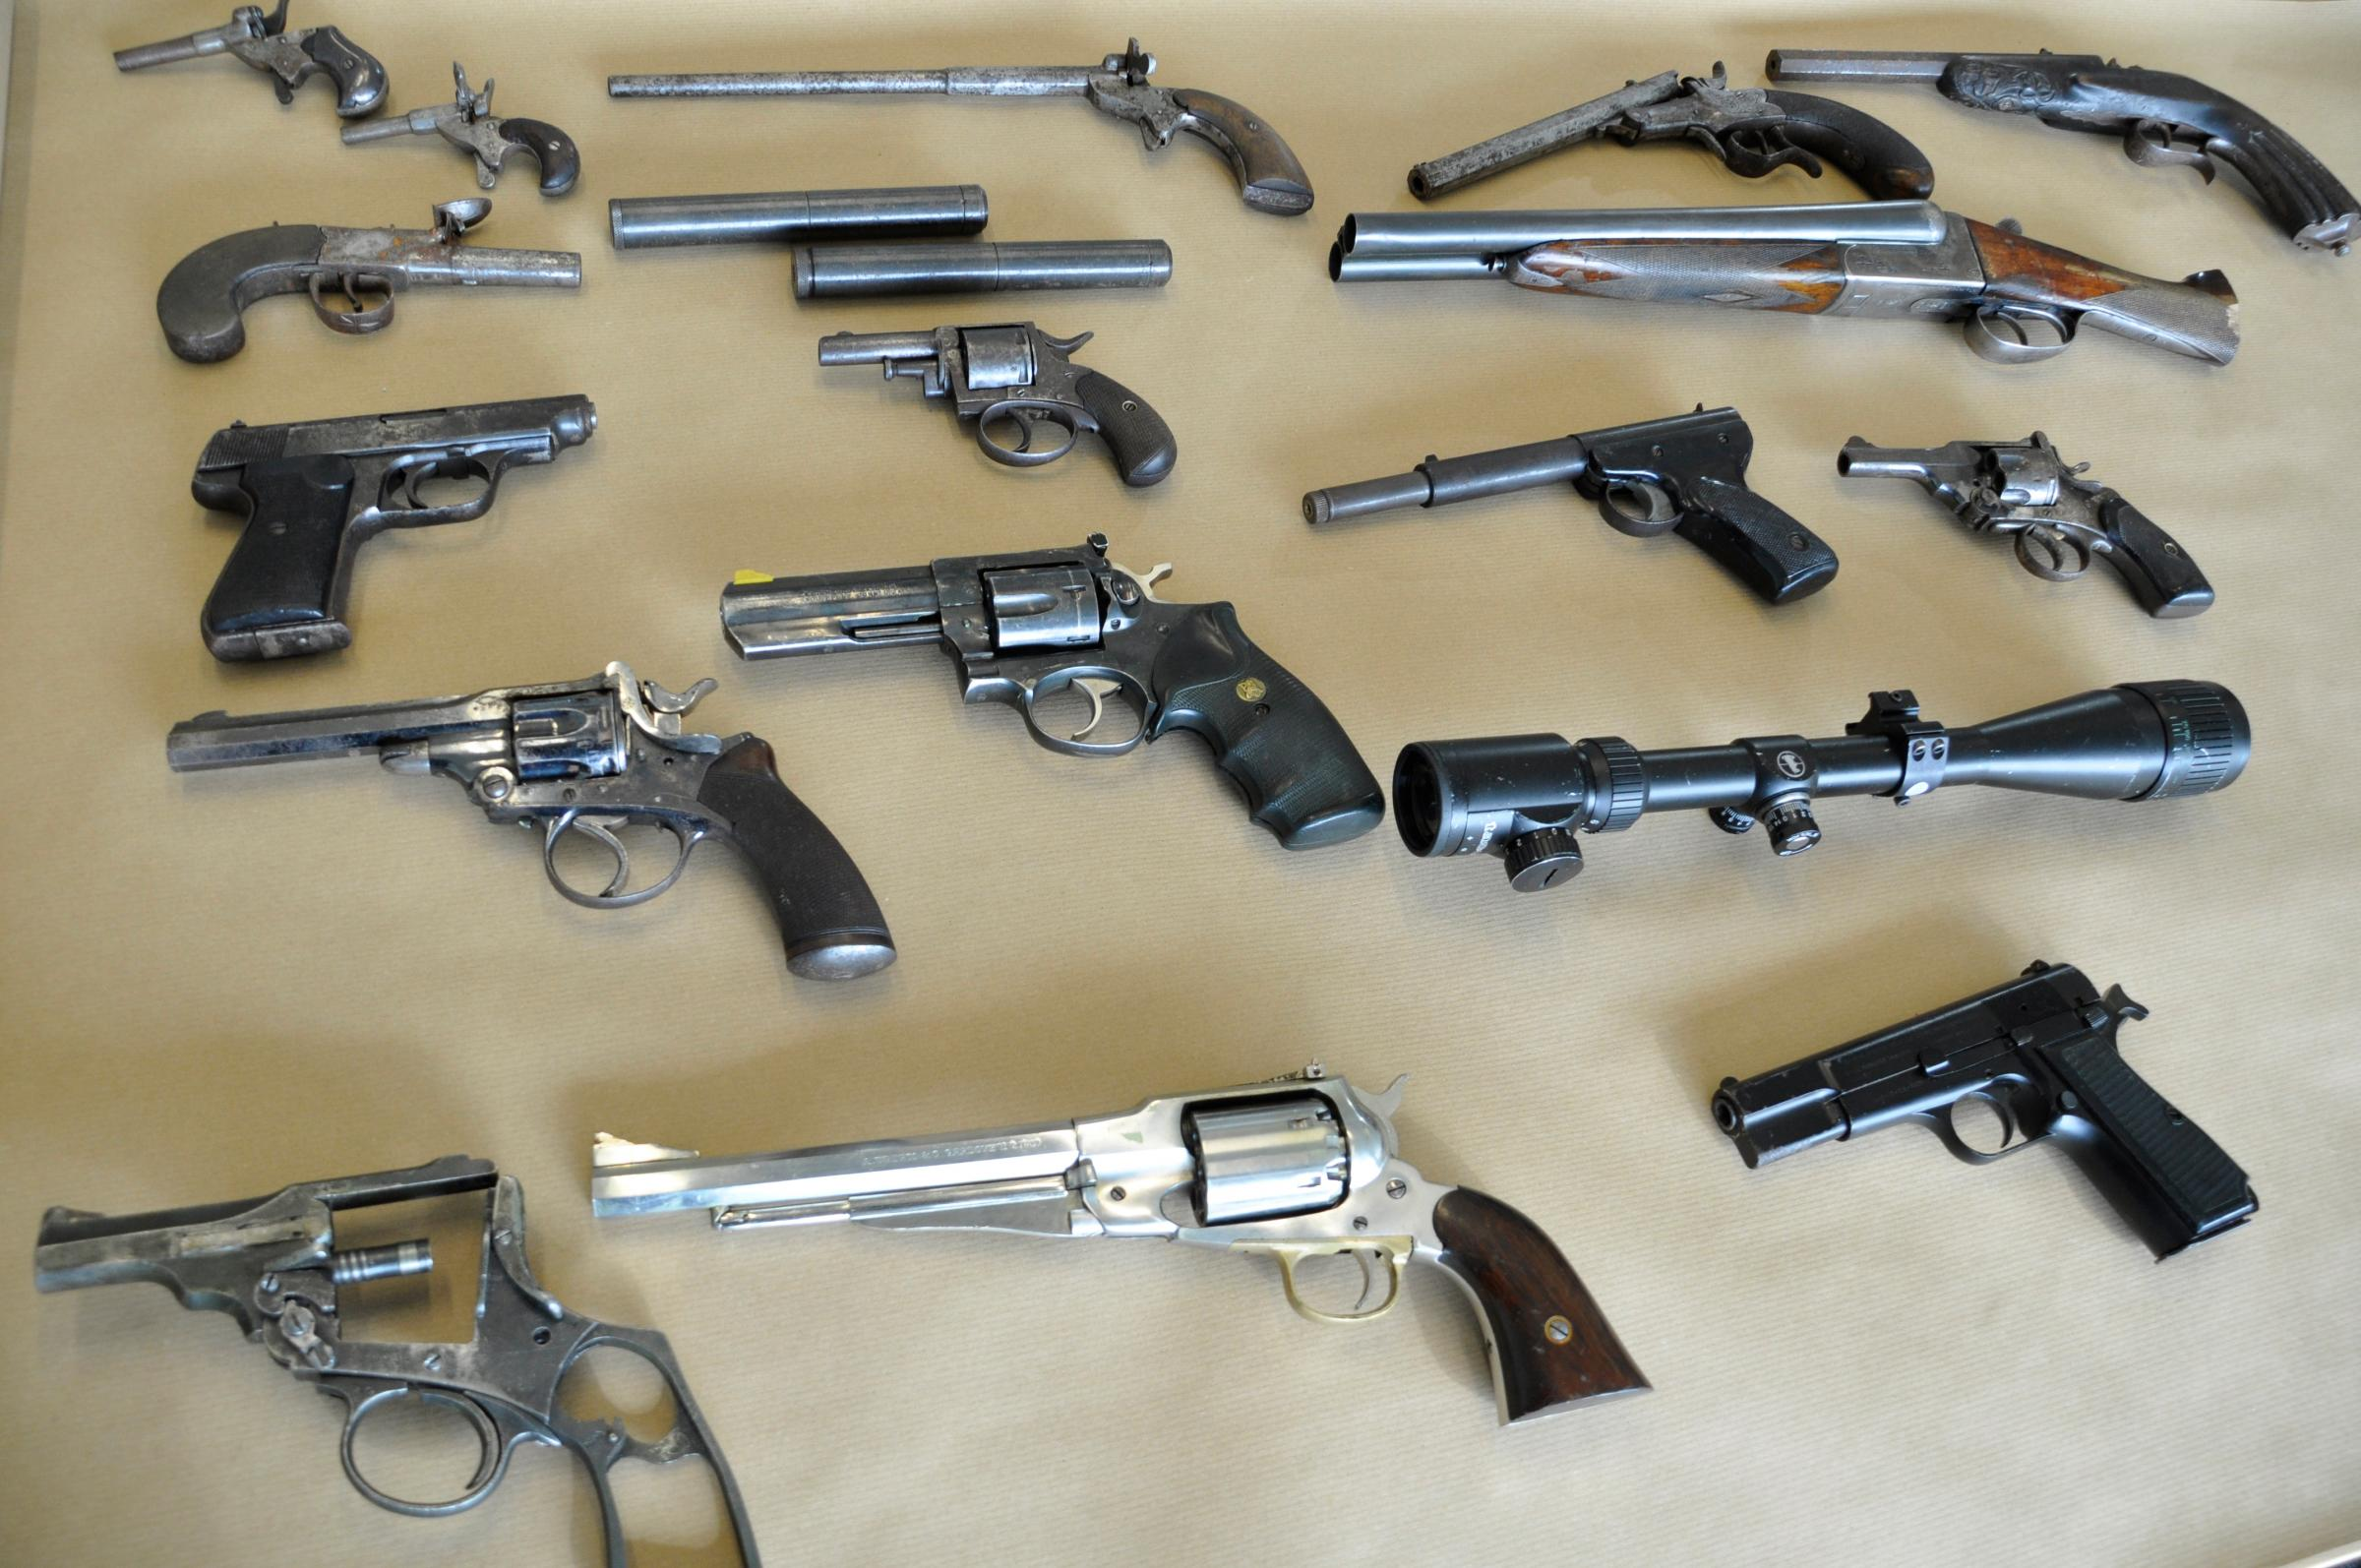 Residents' shock after huge stash of guns and ammunition of weapons found in flat